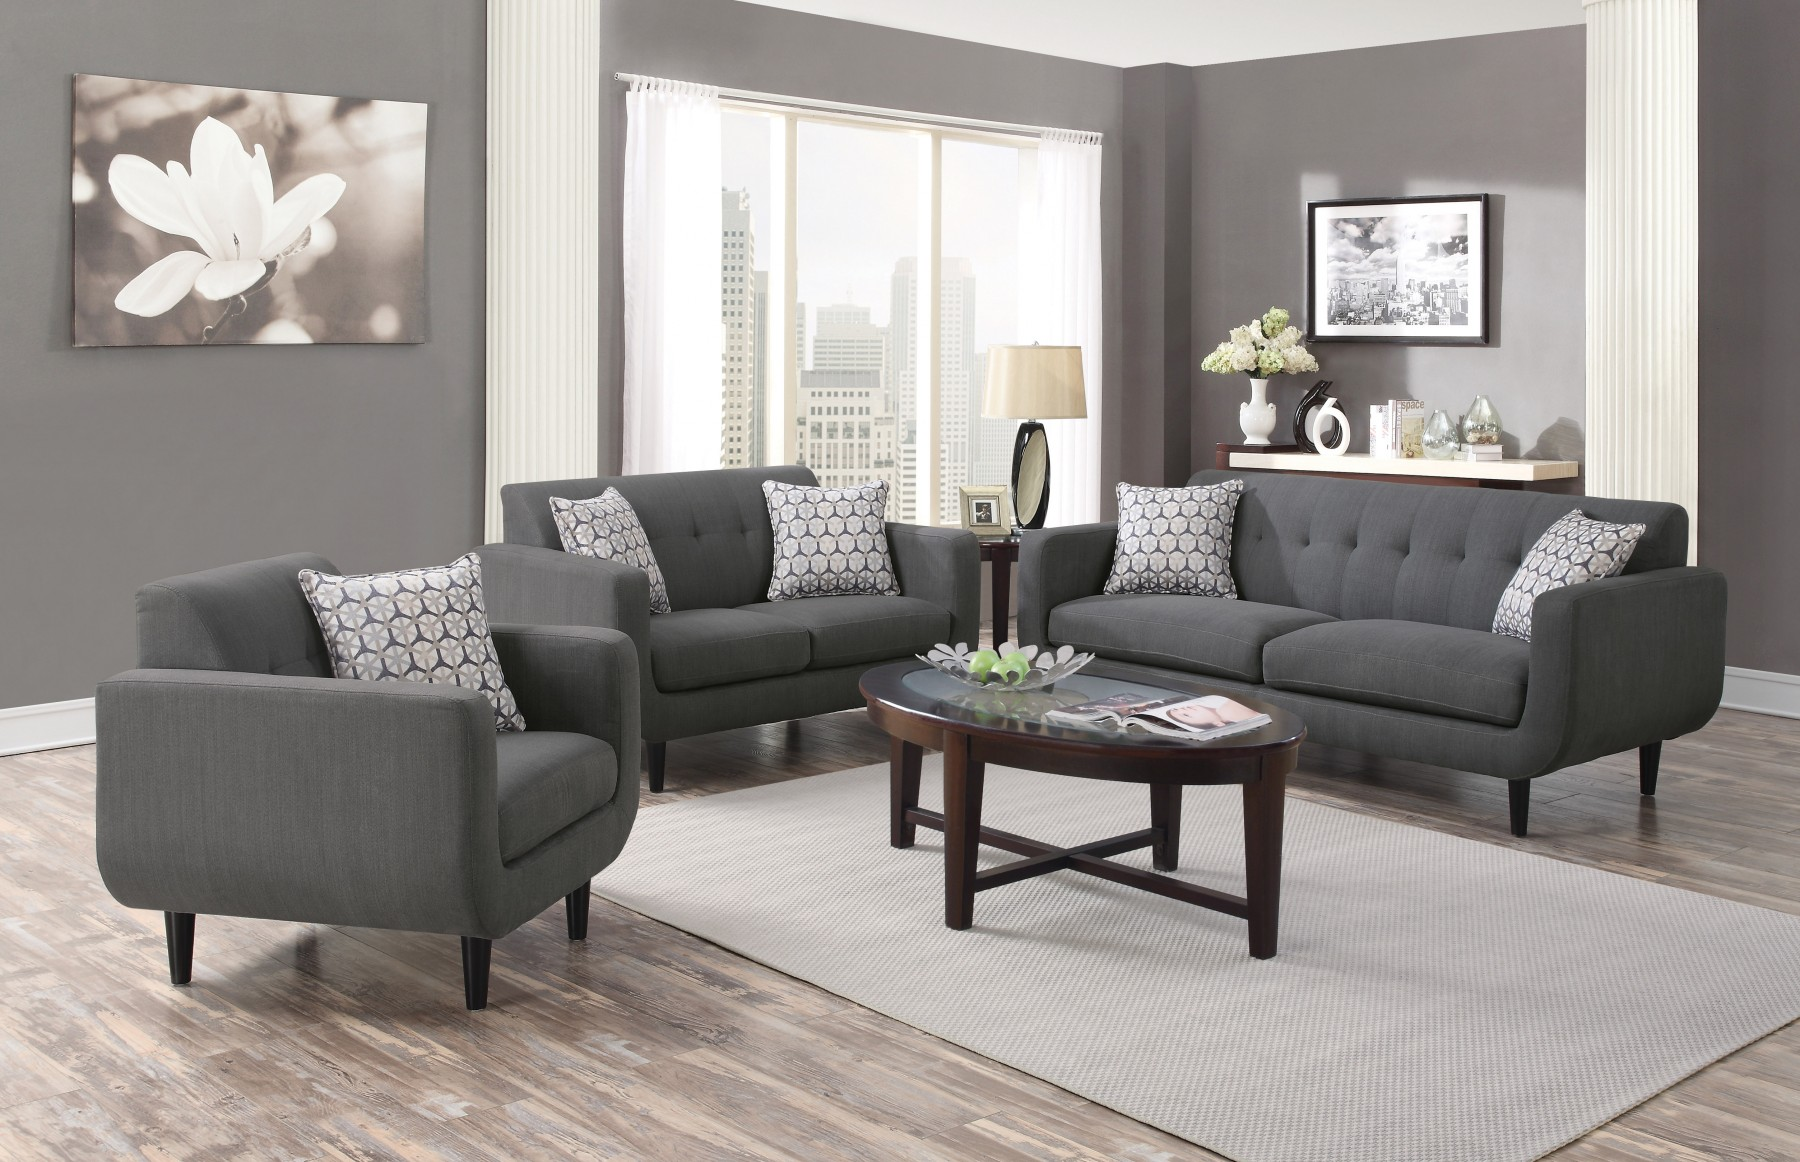 Simple Relax Stansall 3 Pcs Grey Linen Like Sofa Couch Set - Walmart.com